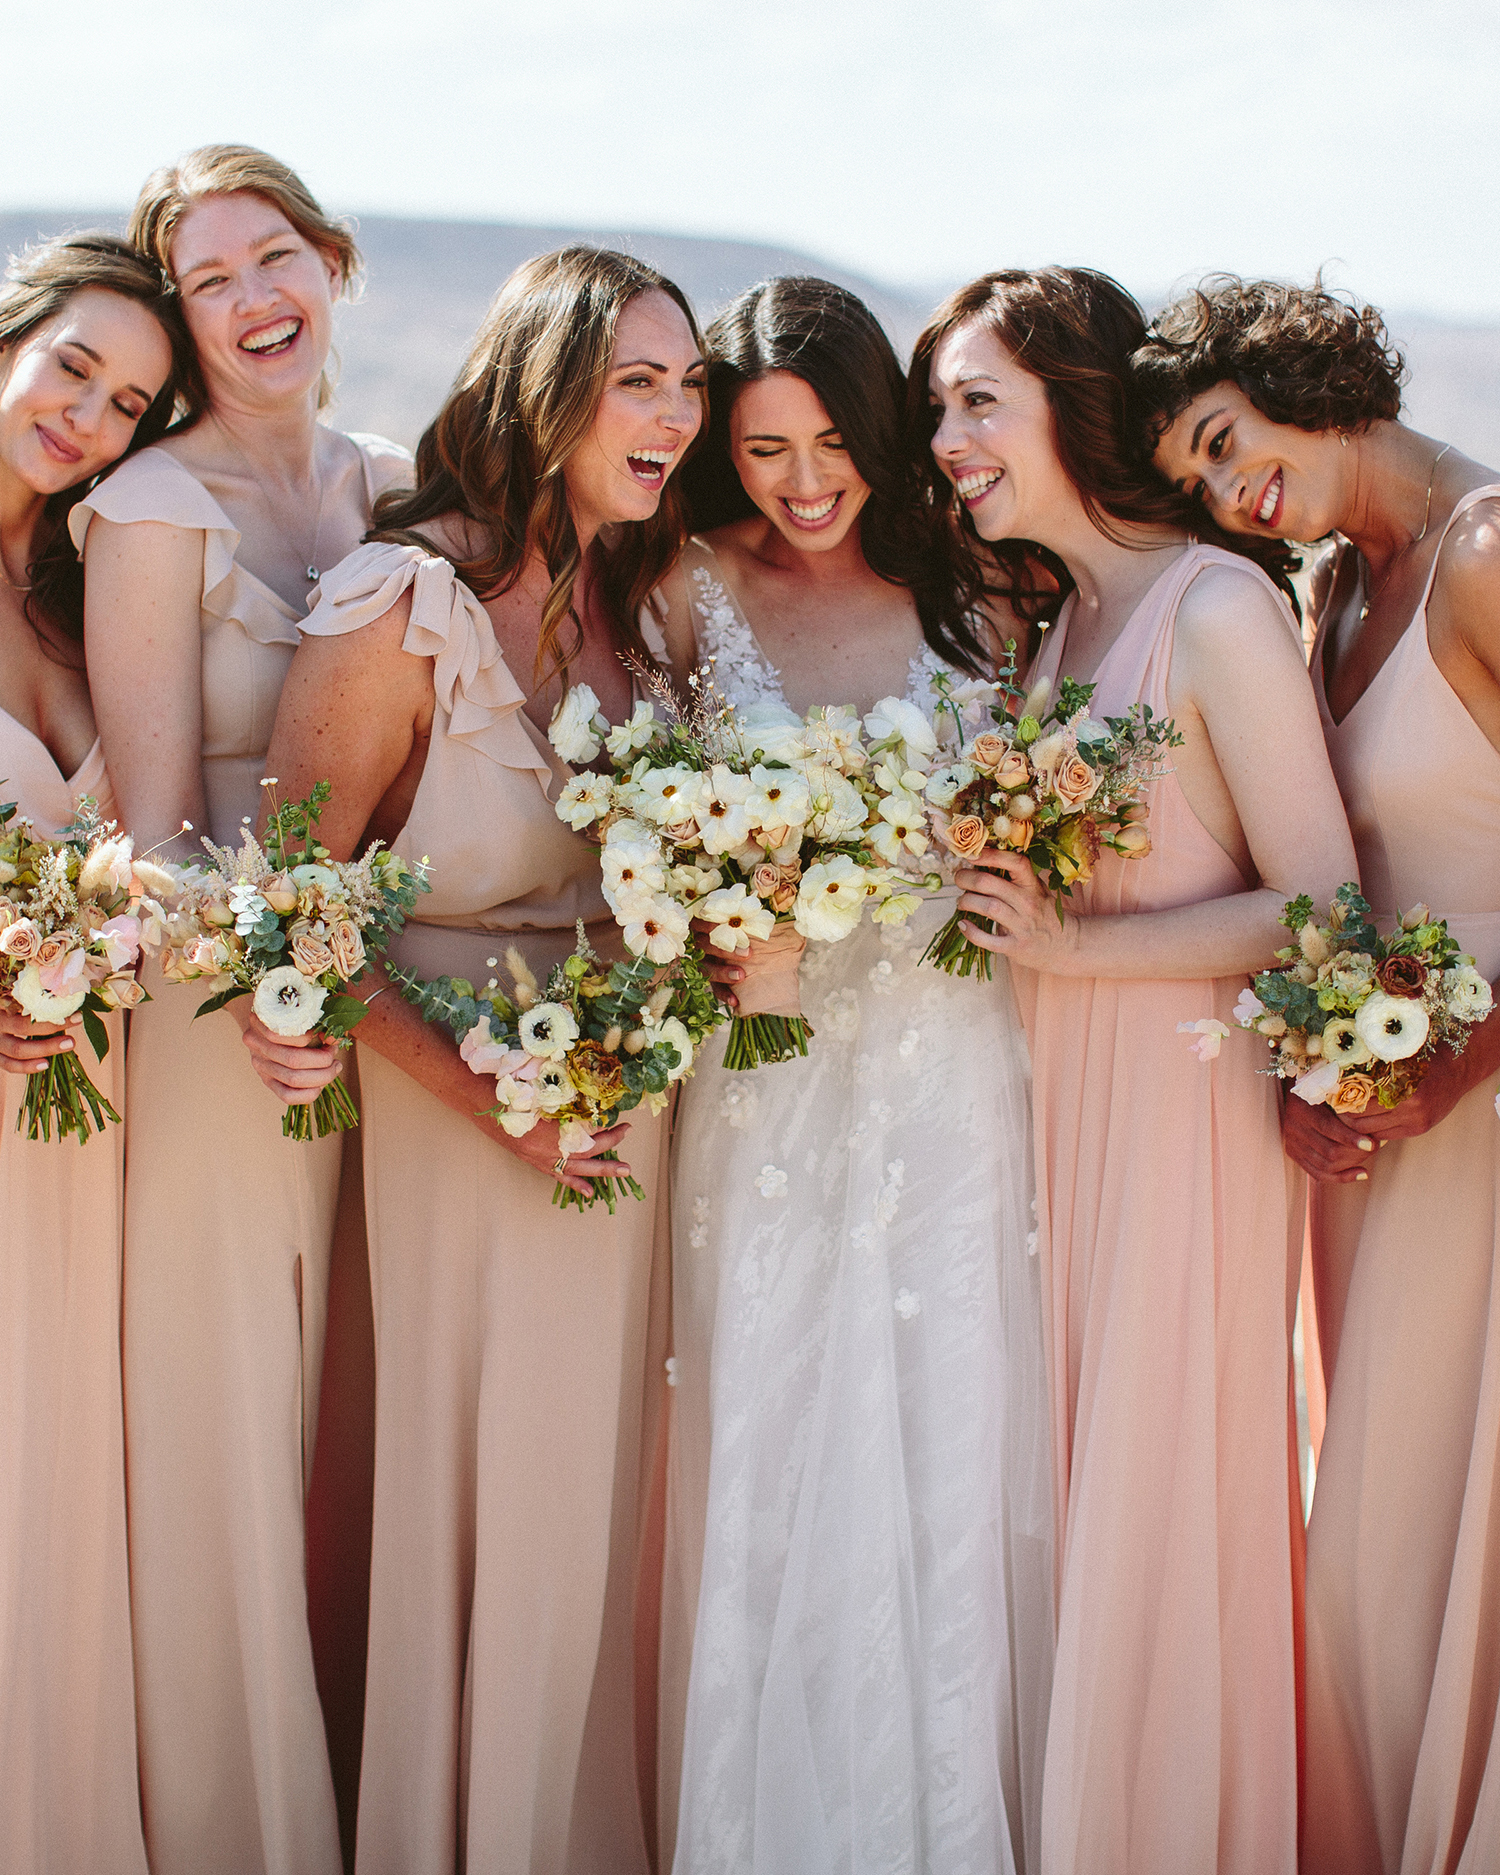 Five Ways to Be the Most Supportive Bridesmaid Ever